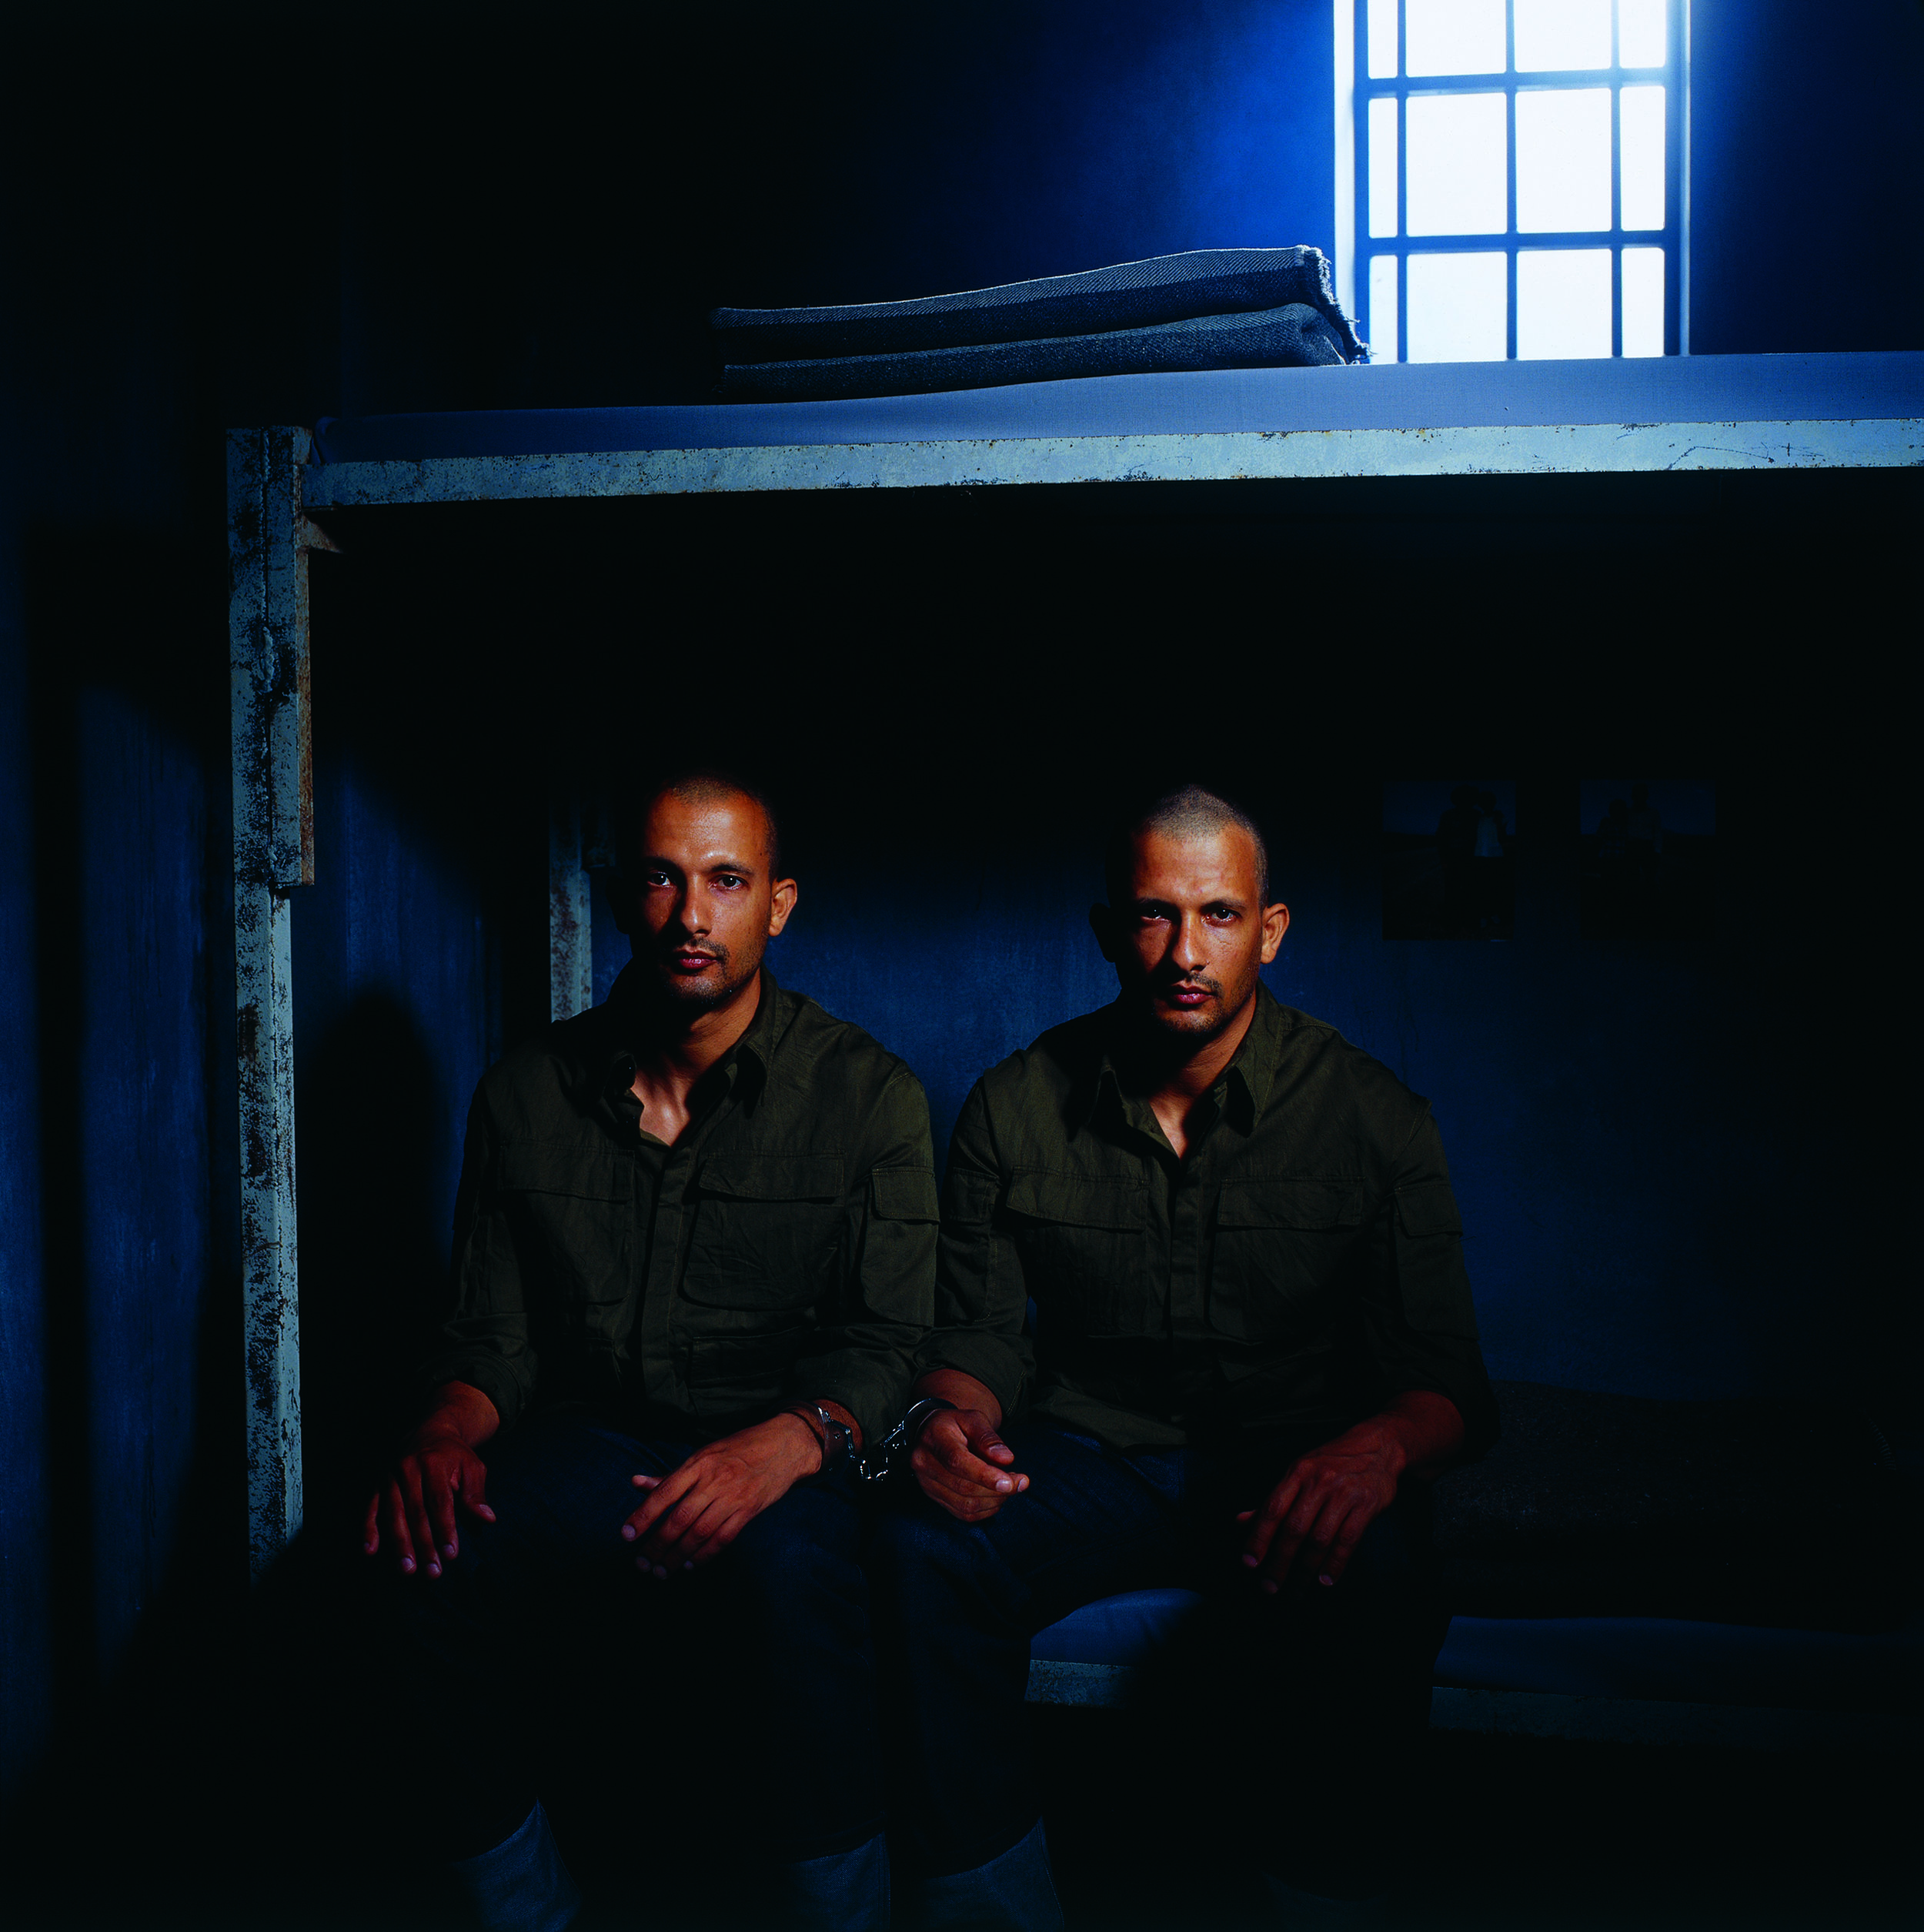 """""""Untitled"""" from the """"Prisoners"""" series, 2003 color photograph mounted on PVC edition of 3 125 x 125 cm - 49 1/4 x 49 1/4 inches"""